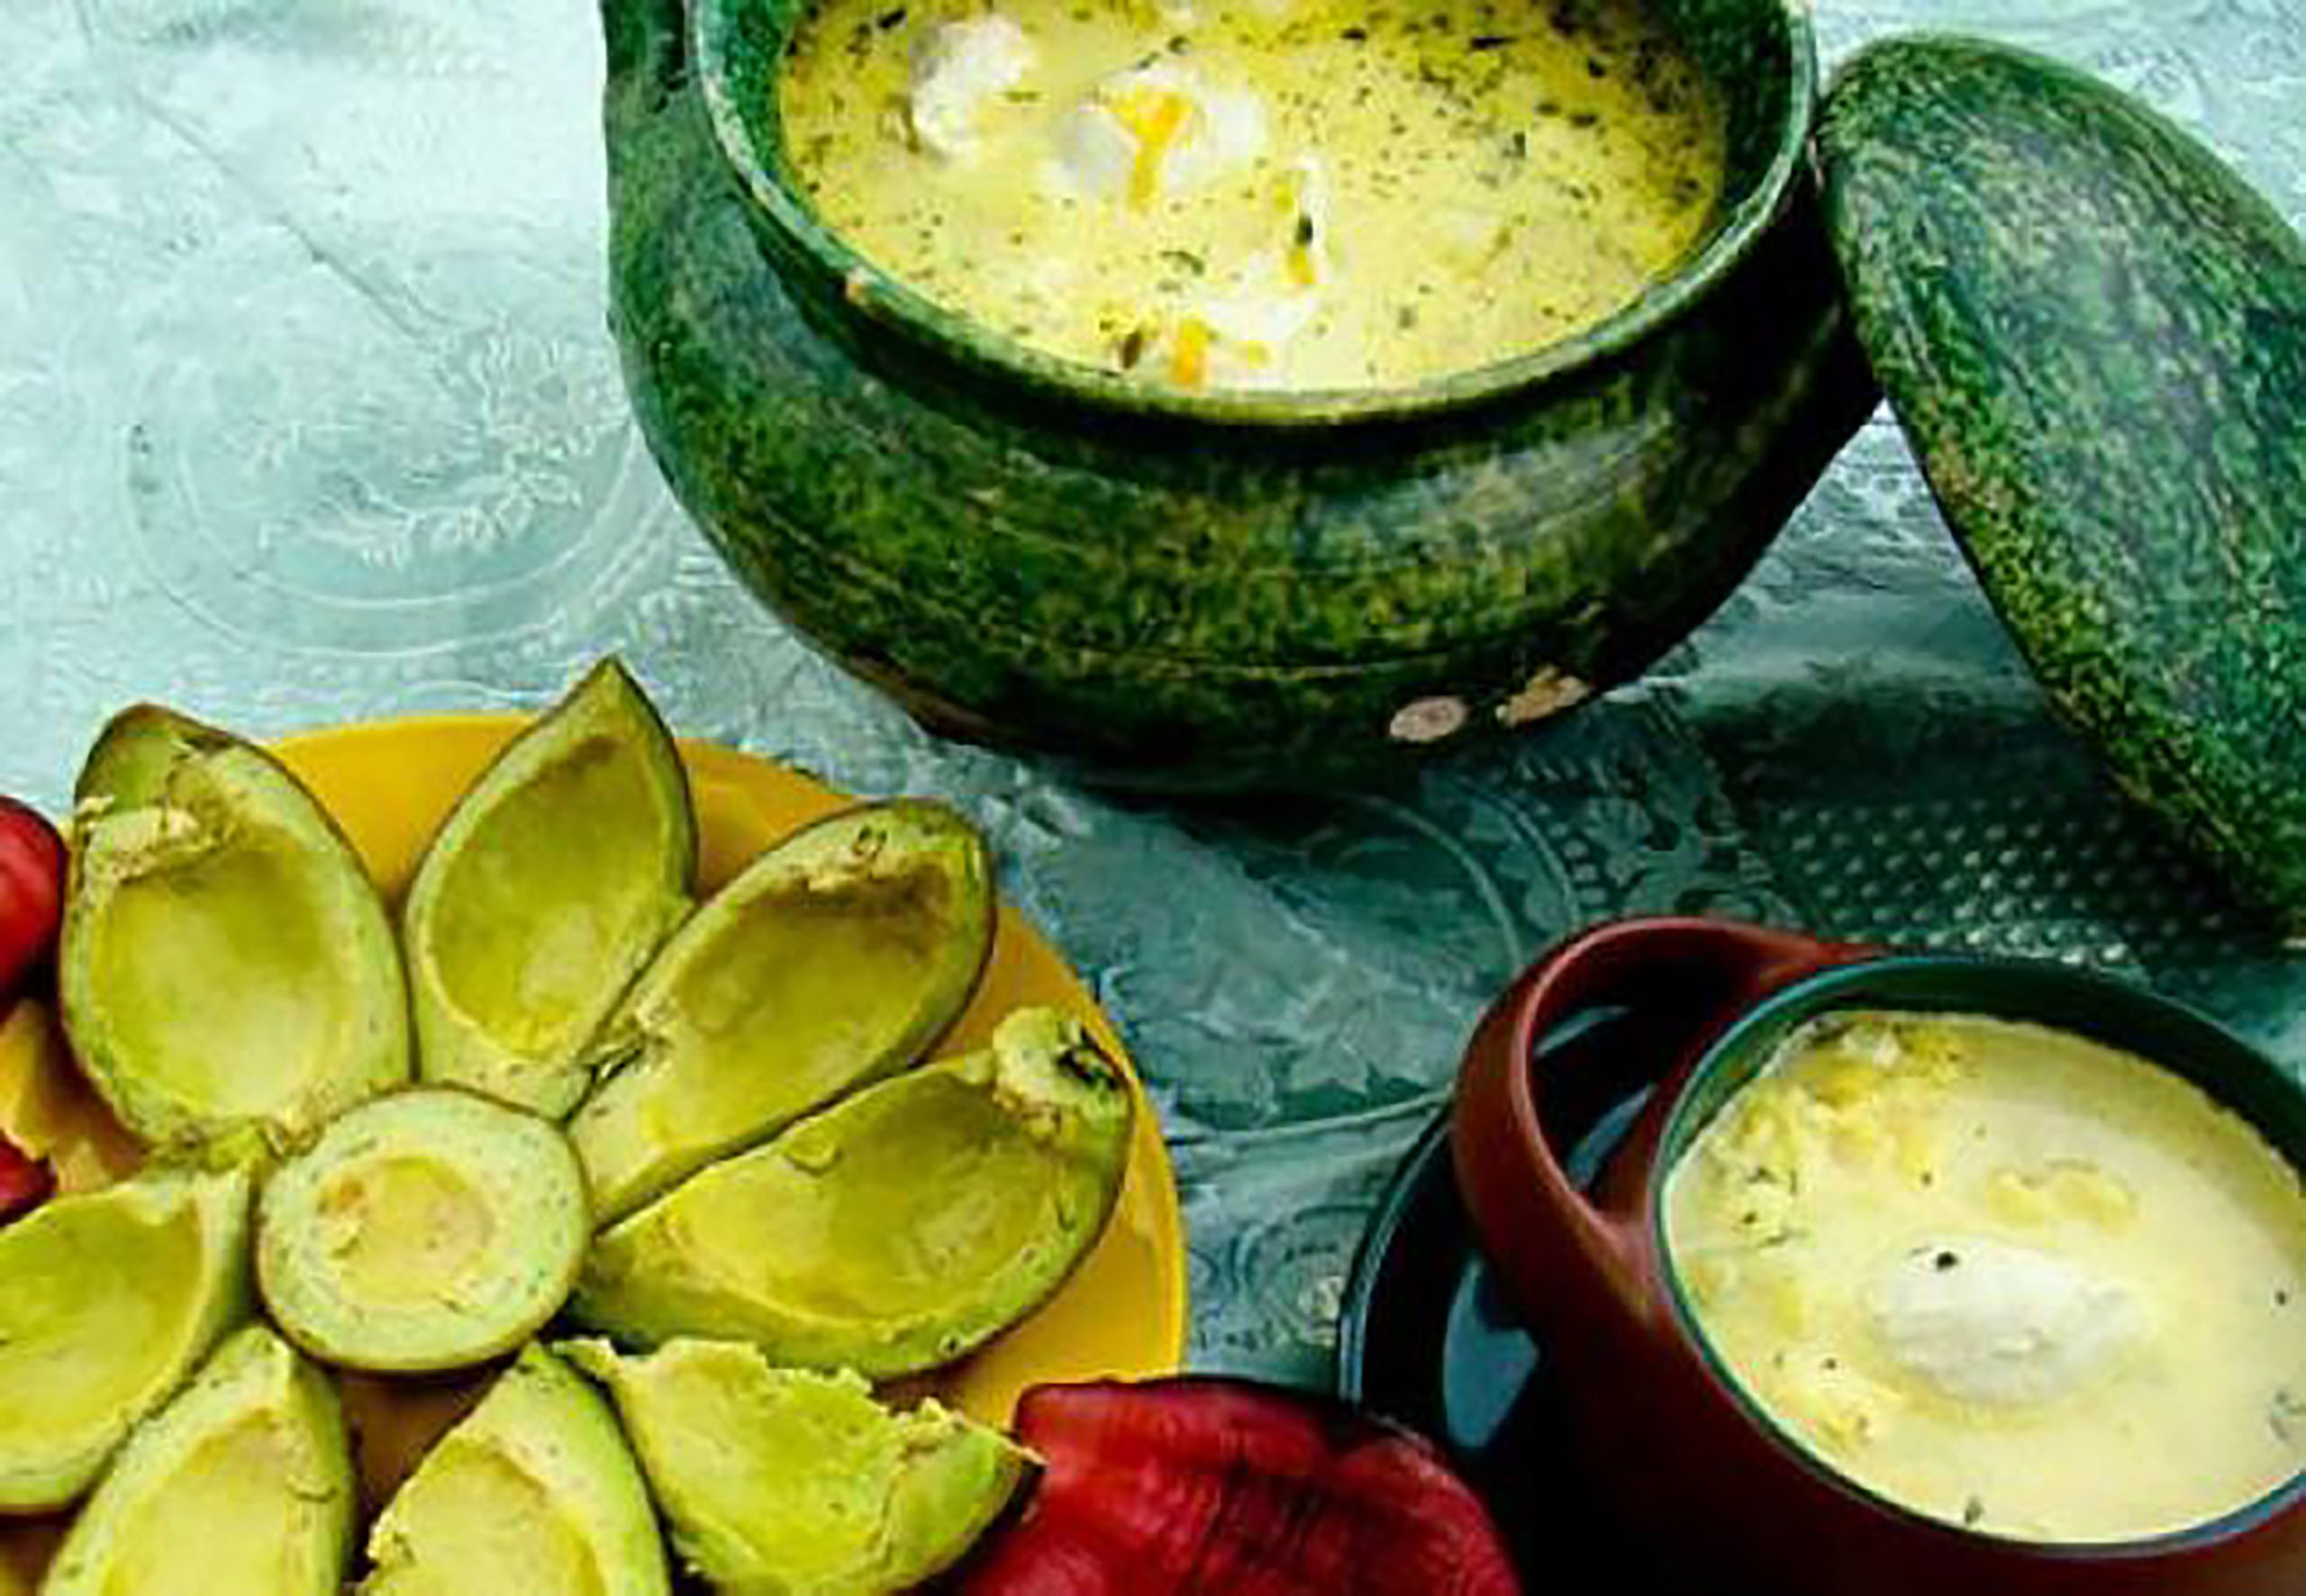 A plate with slices avocados all around it and a bowl of a Colombian soup with yellow coloring in a green bowl